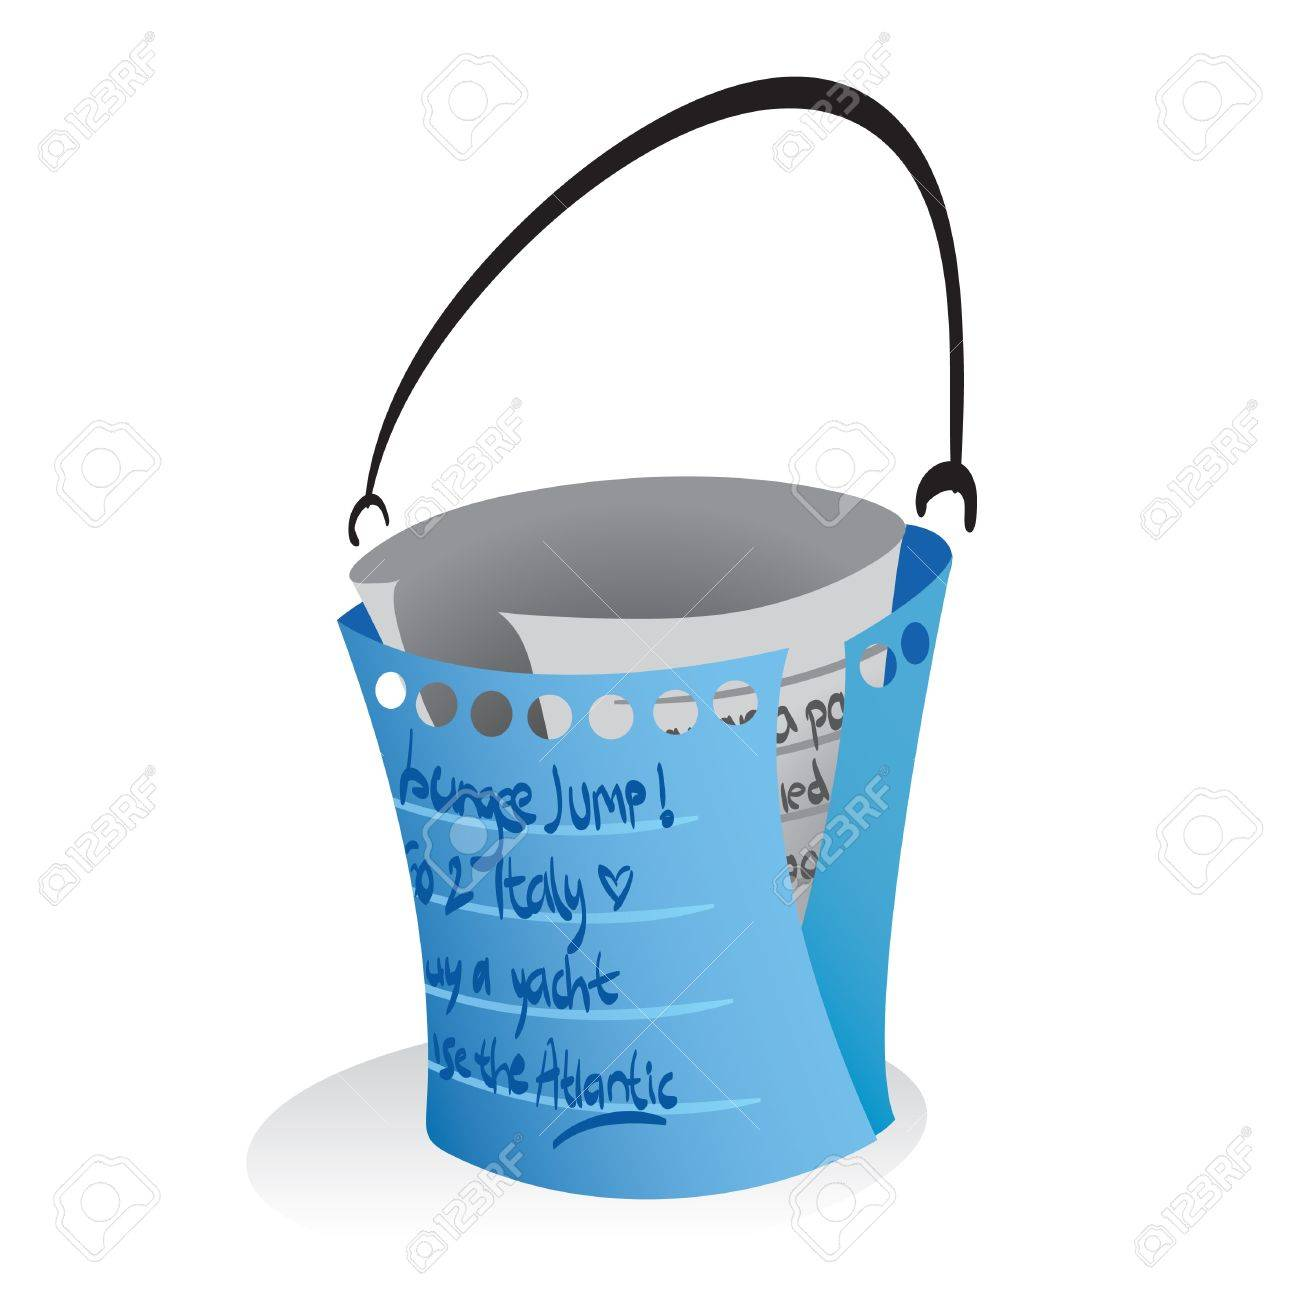 Illustration of a paper notes forming a bucket, a symbolization of 'bucketlist'. - 8446823